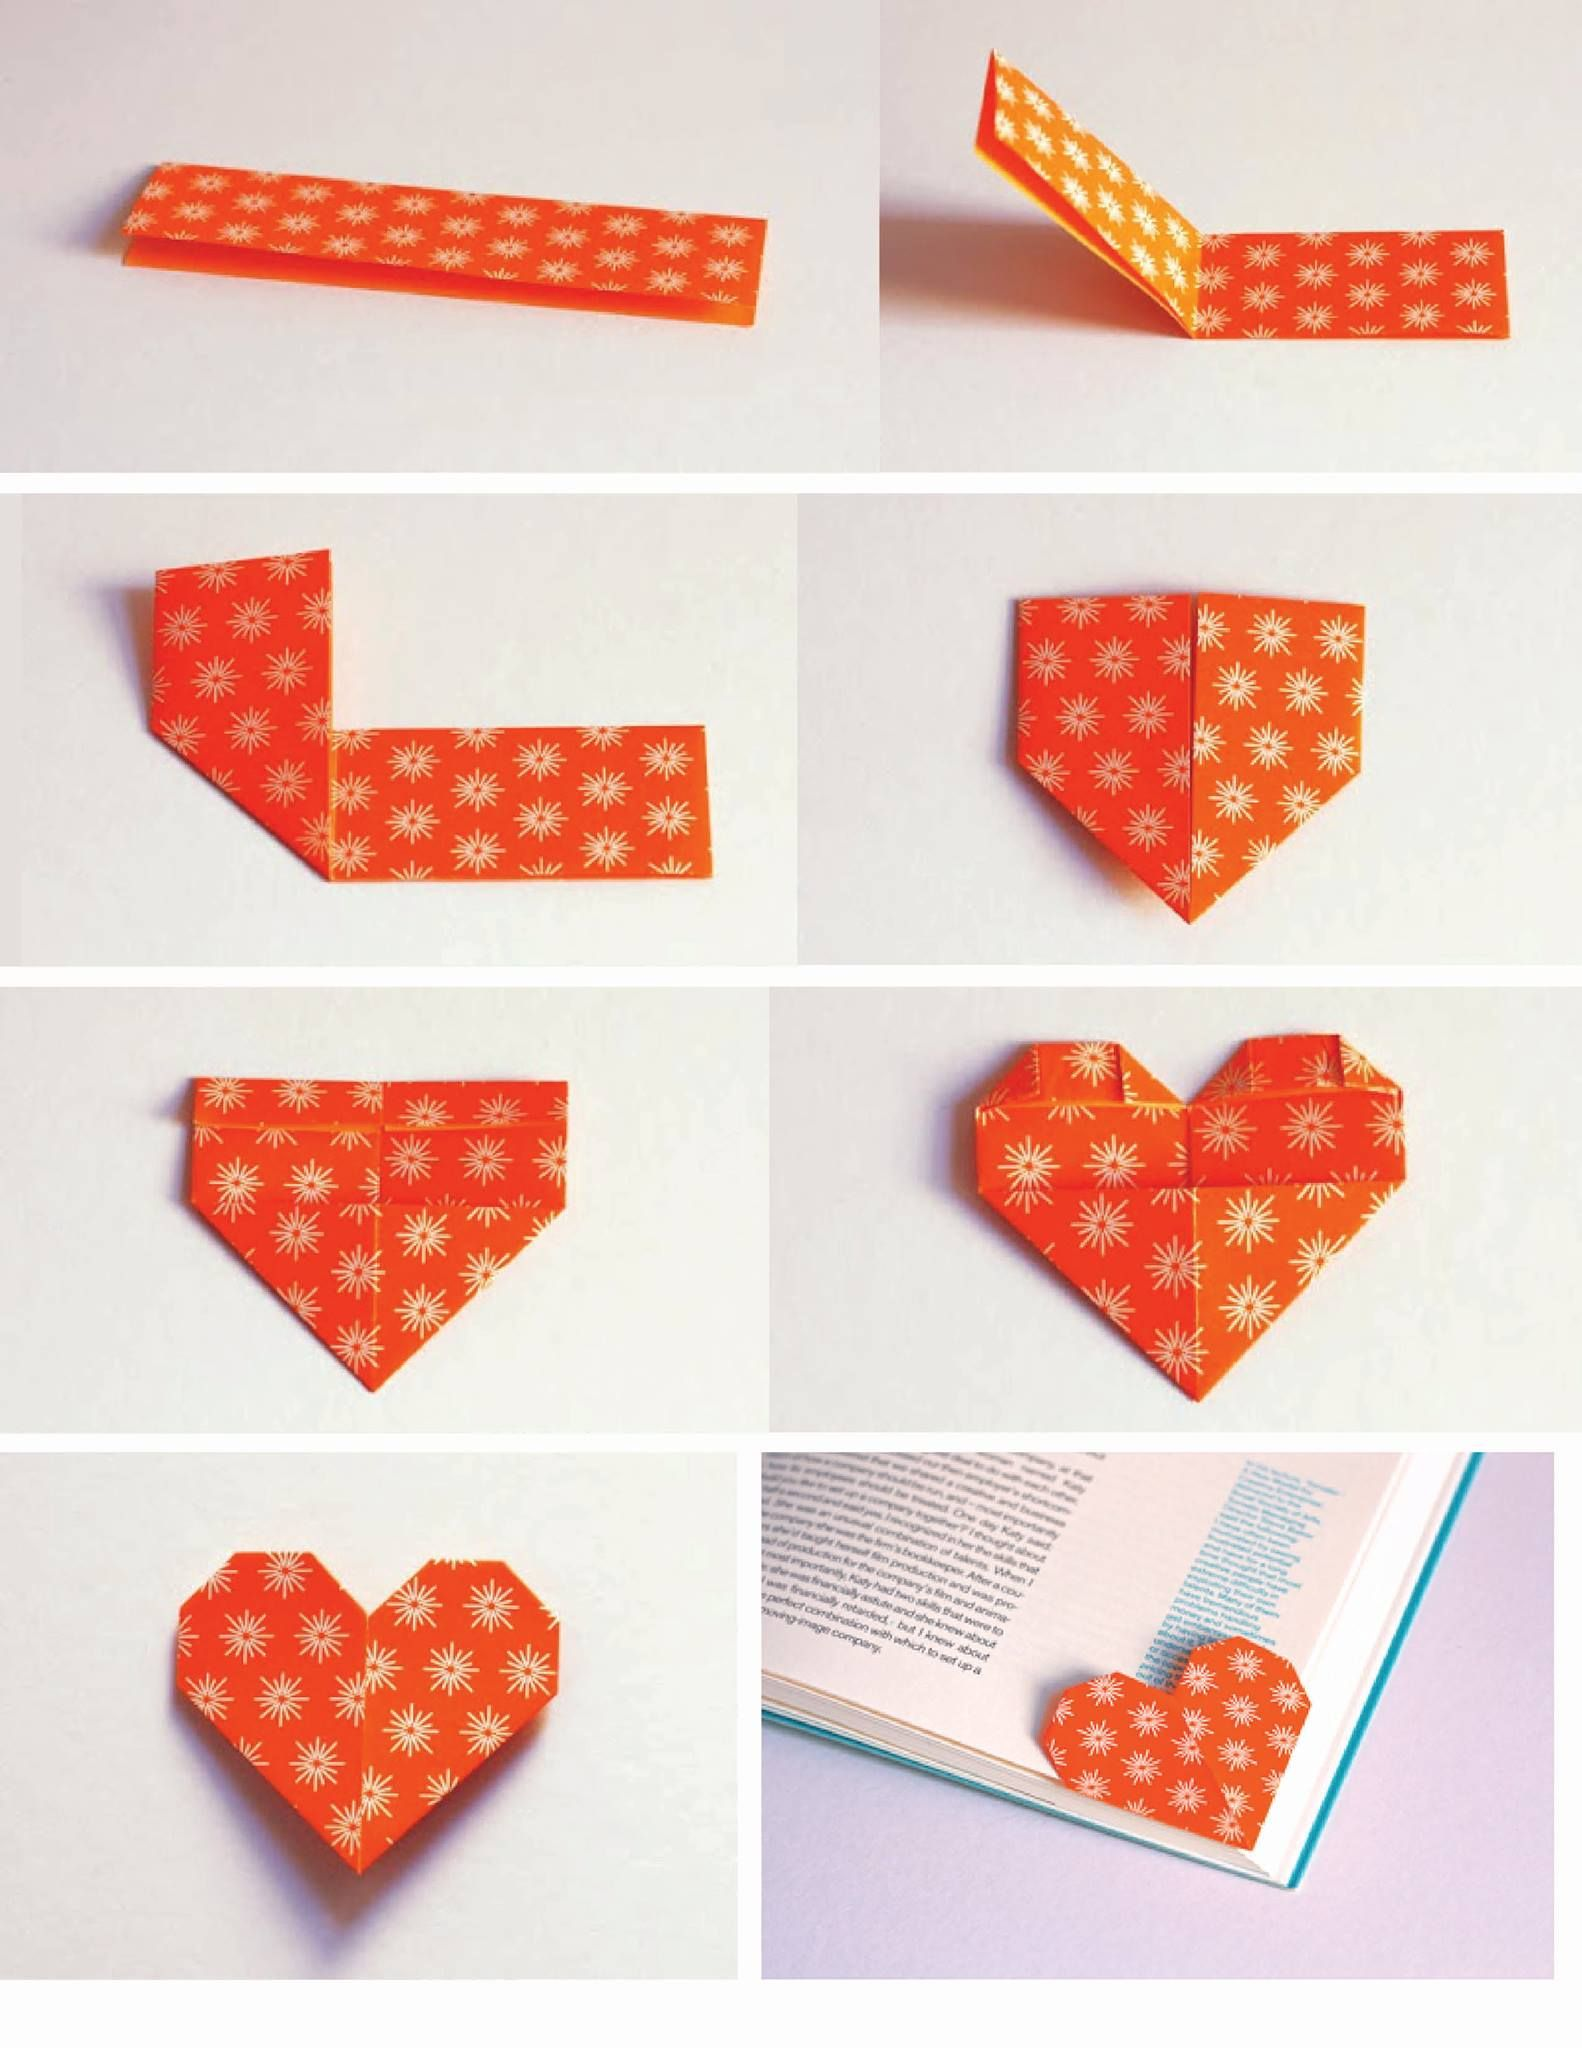 make a cute heart shaped origami bookmark to keep track of the last